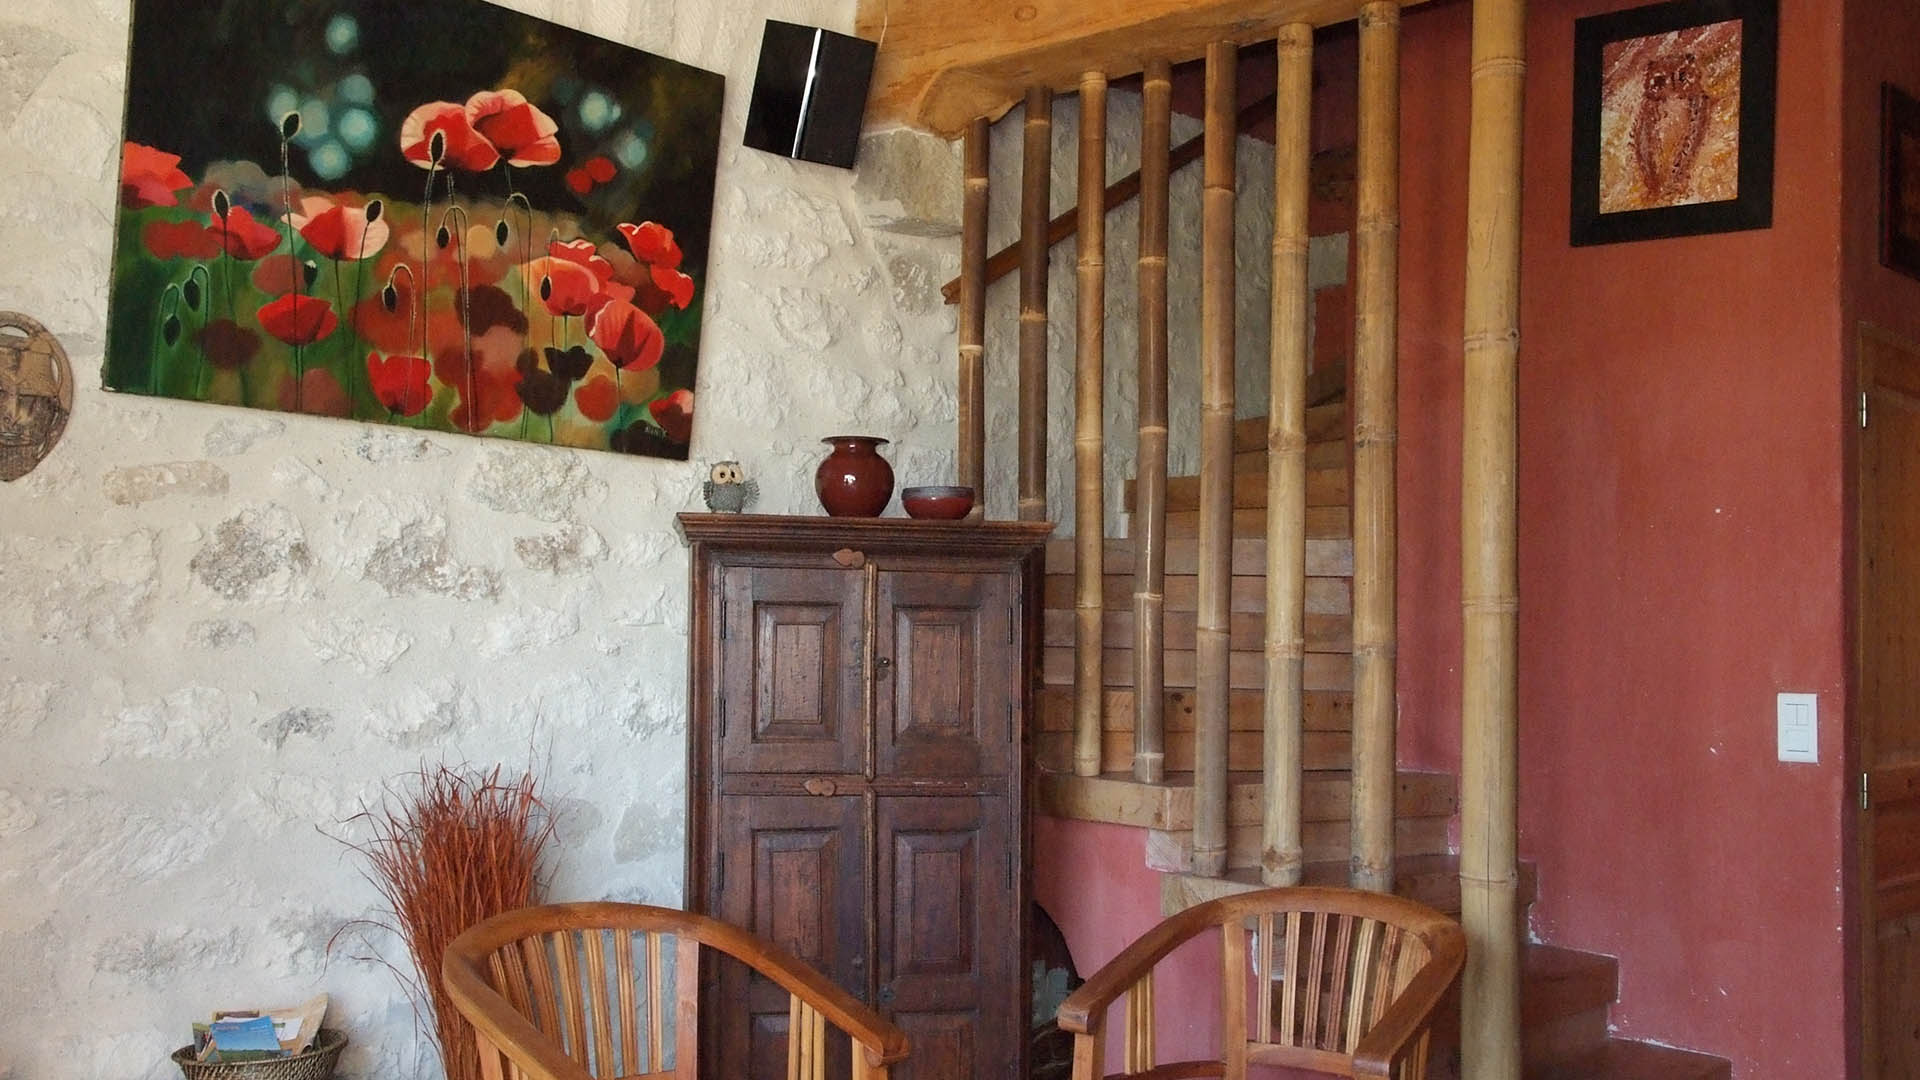 Staircase Ocher Mas de la Chouette Cottages and Bed and Breakfast at Mas de la Chouette in Saint Remy de Provence 13210